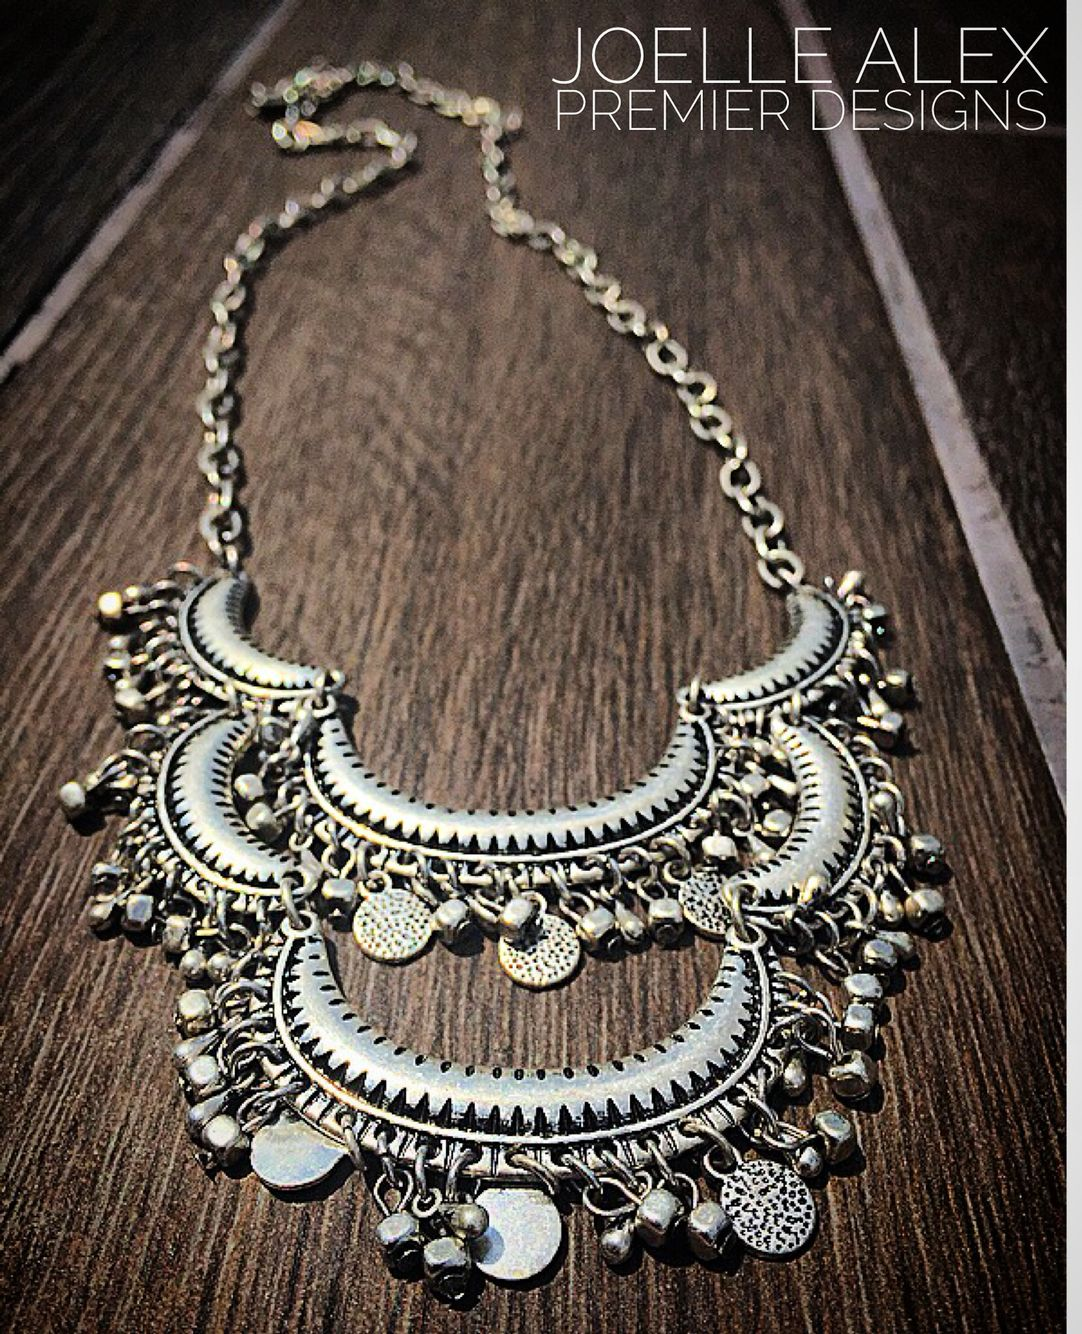 Joelle Premer Designs Necklace